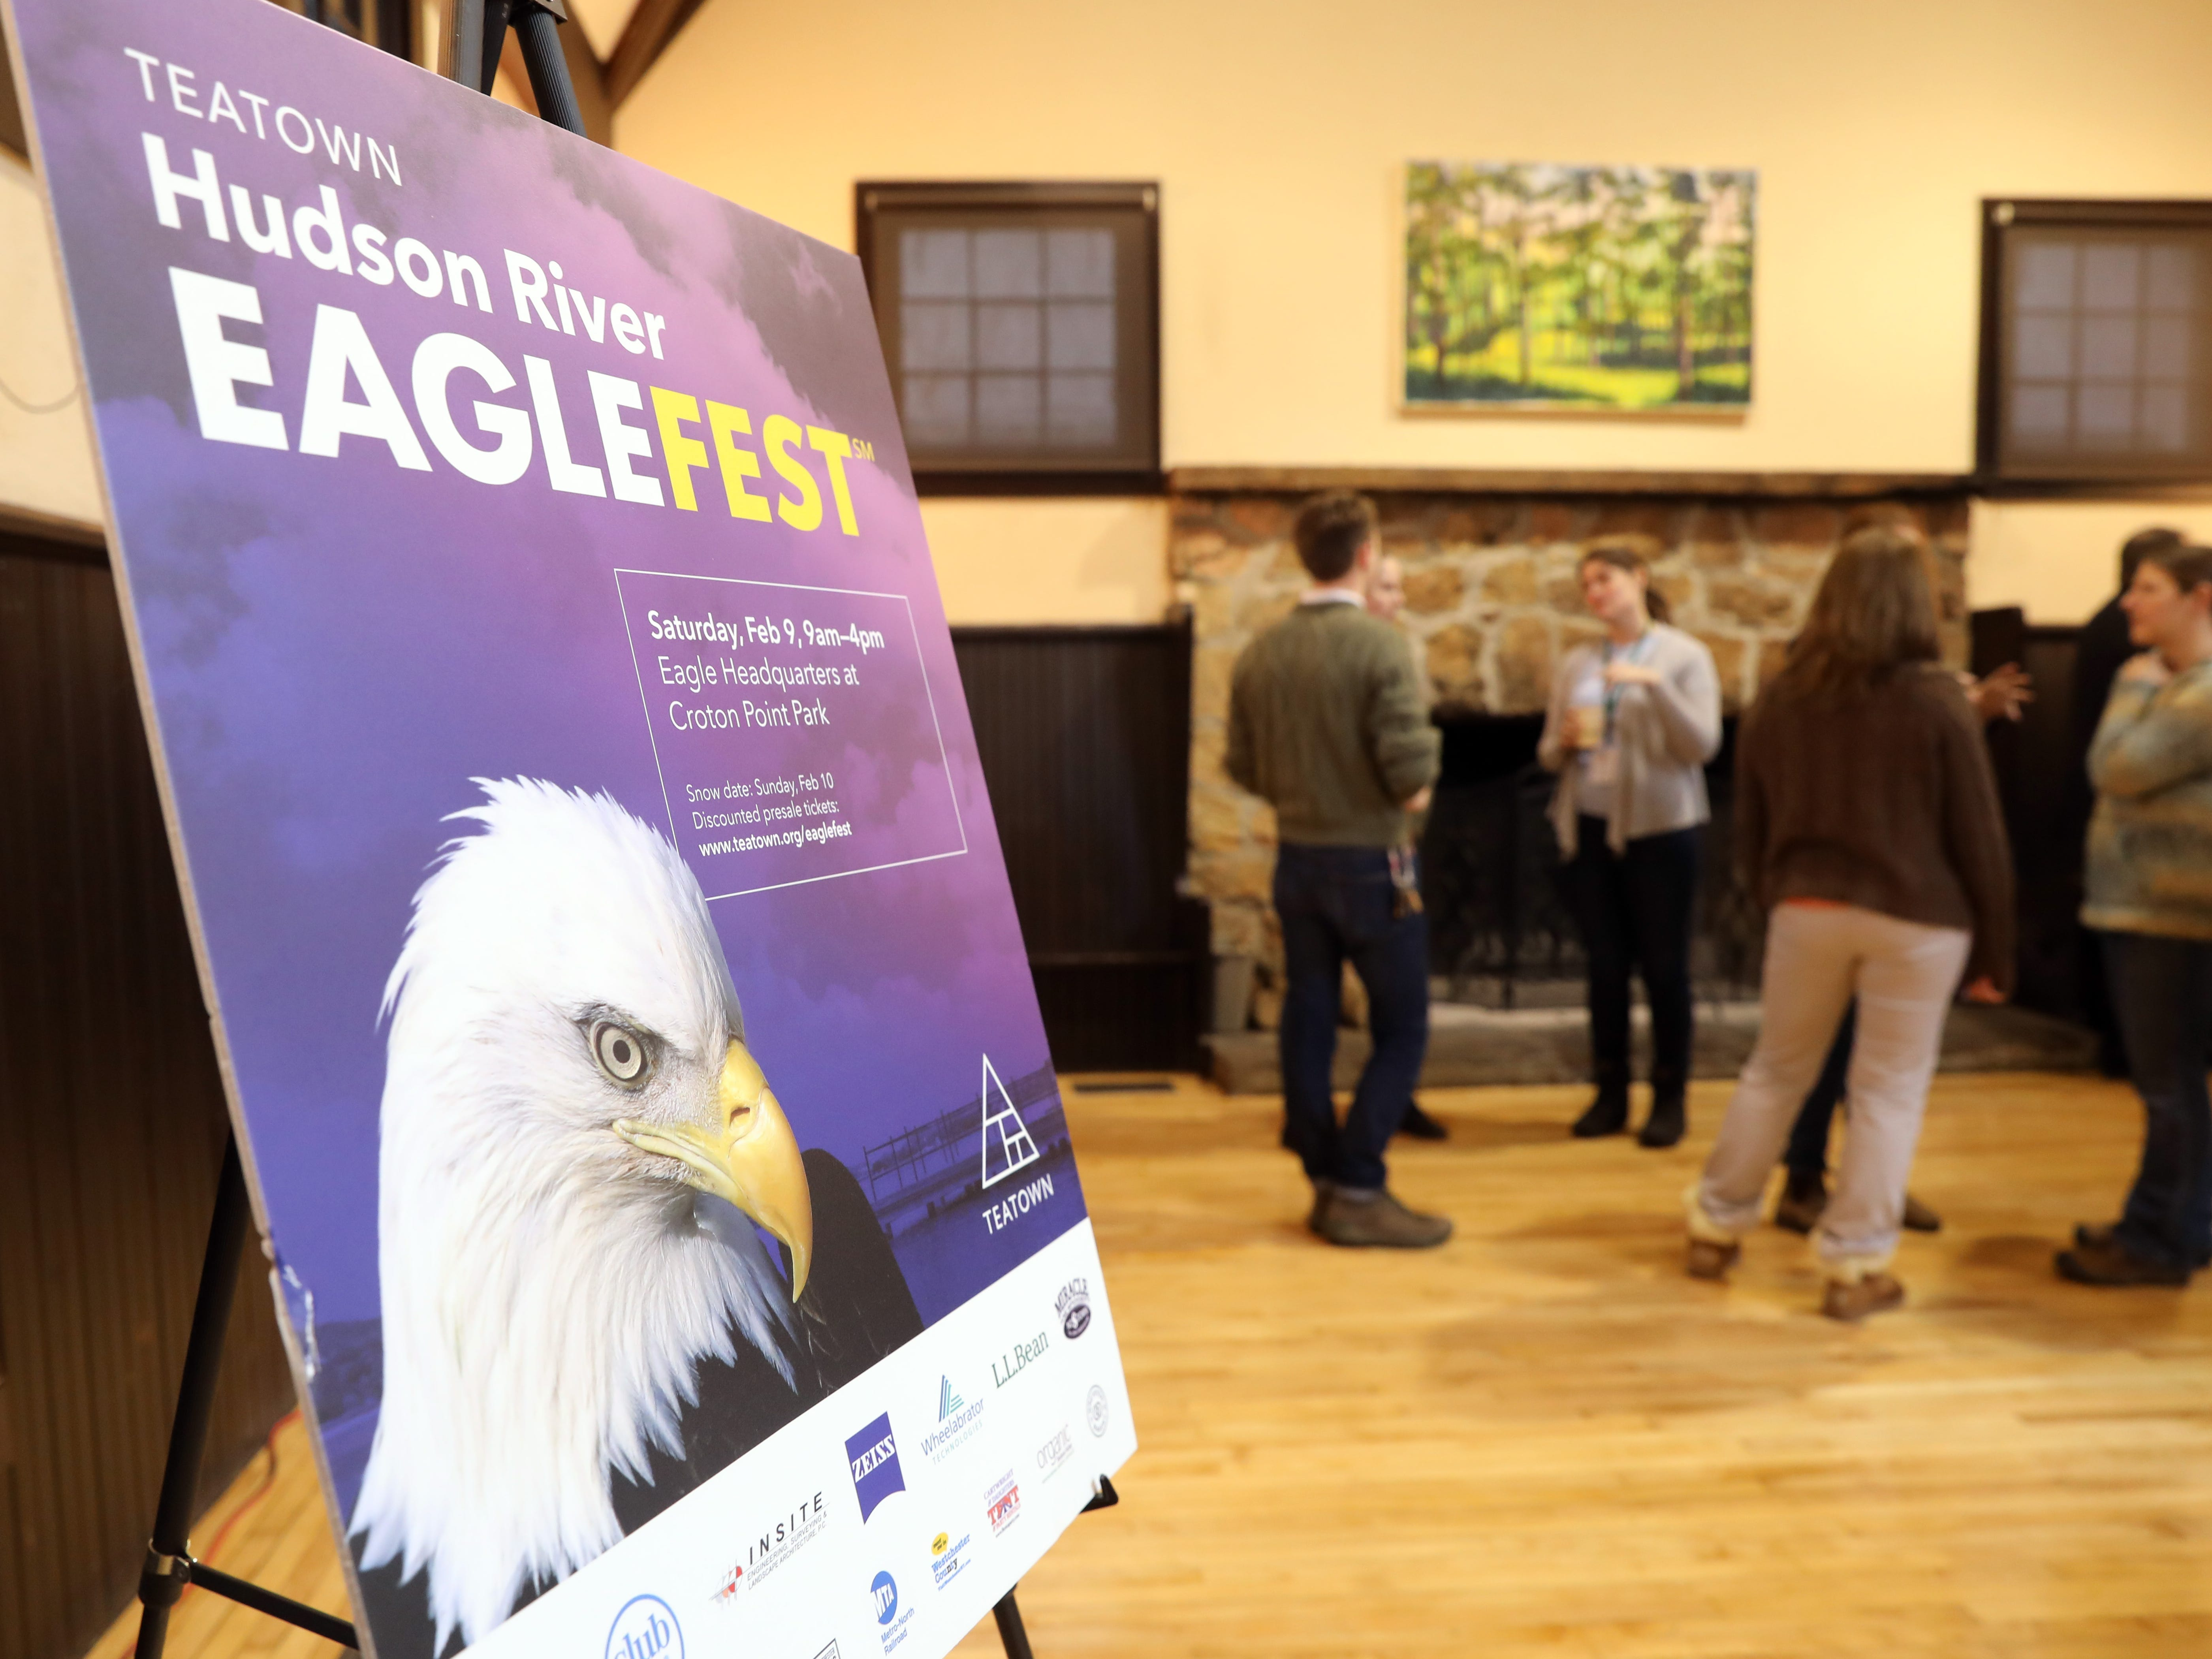 Teatown announces plans for its 15th annual Teatown Hudson River EagleFest at Teatown Lake Reservation in Ossining Jan. 24, 2019. The event will take place on Saturday, February 9 at Croton Point Park in Croton-on-Hudson to celebrate the return of the bald eagle to the Hudson River Valley.